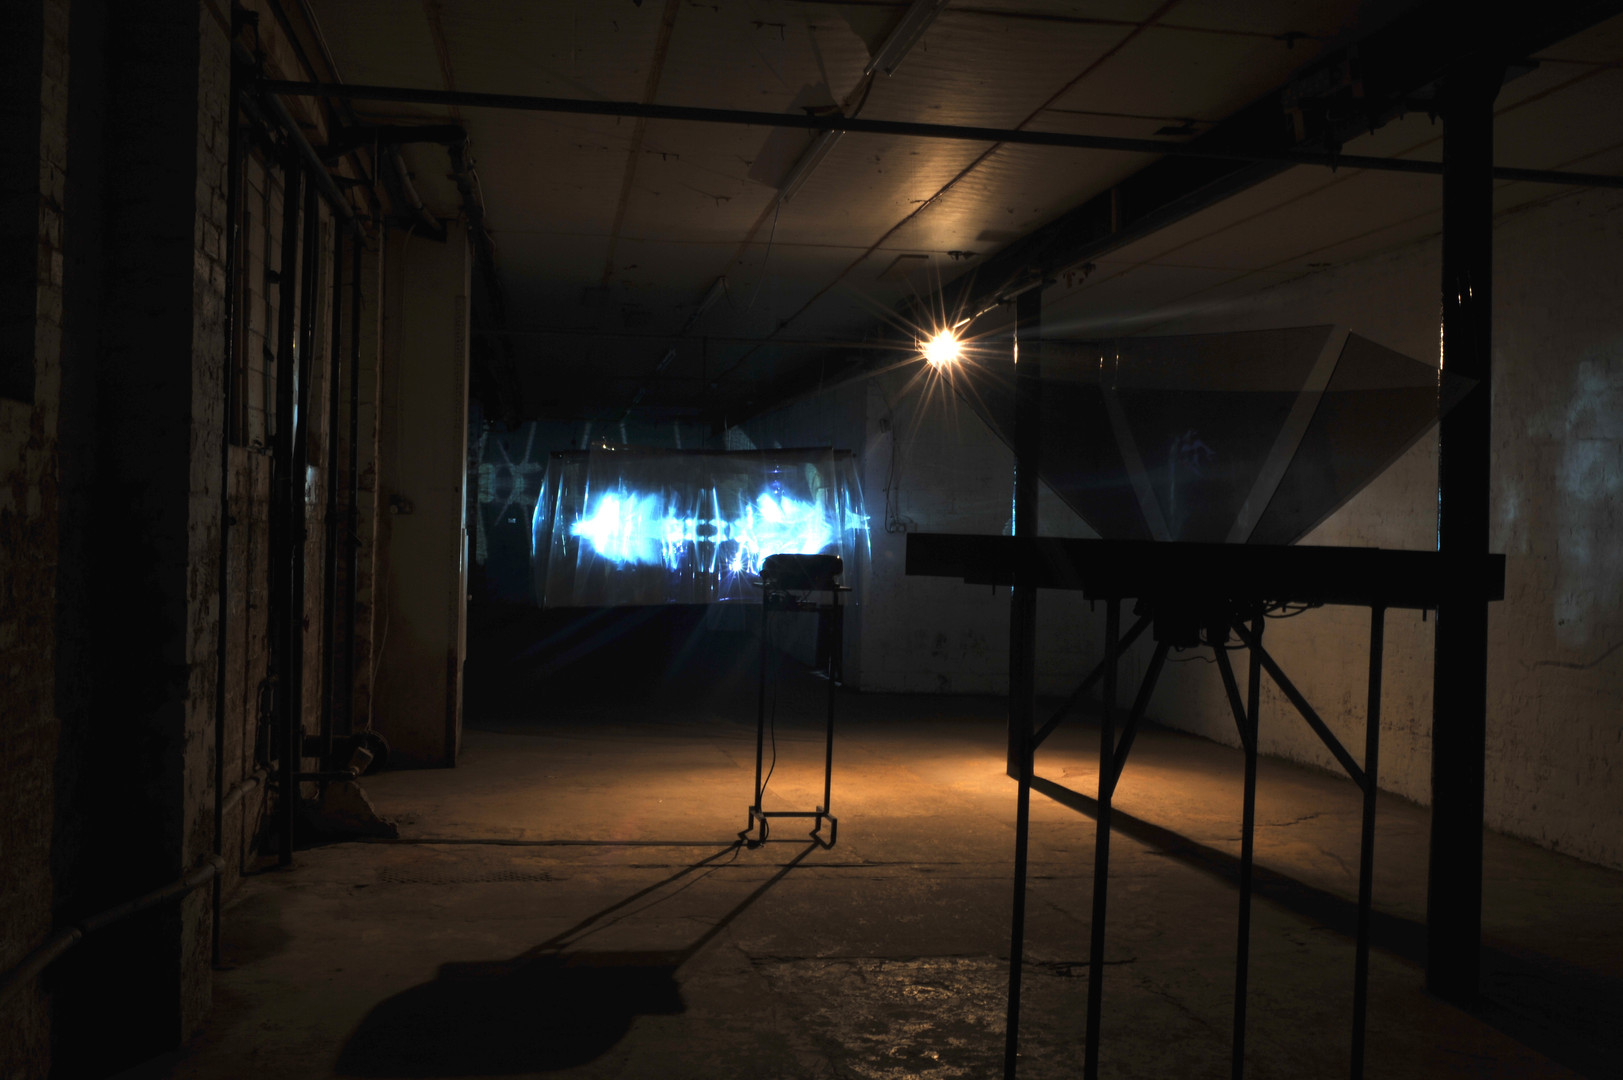 Materials and duration 1.1 | Heather Lander